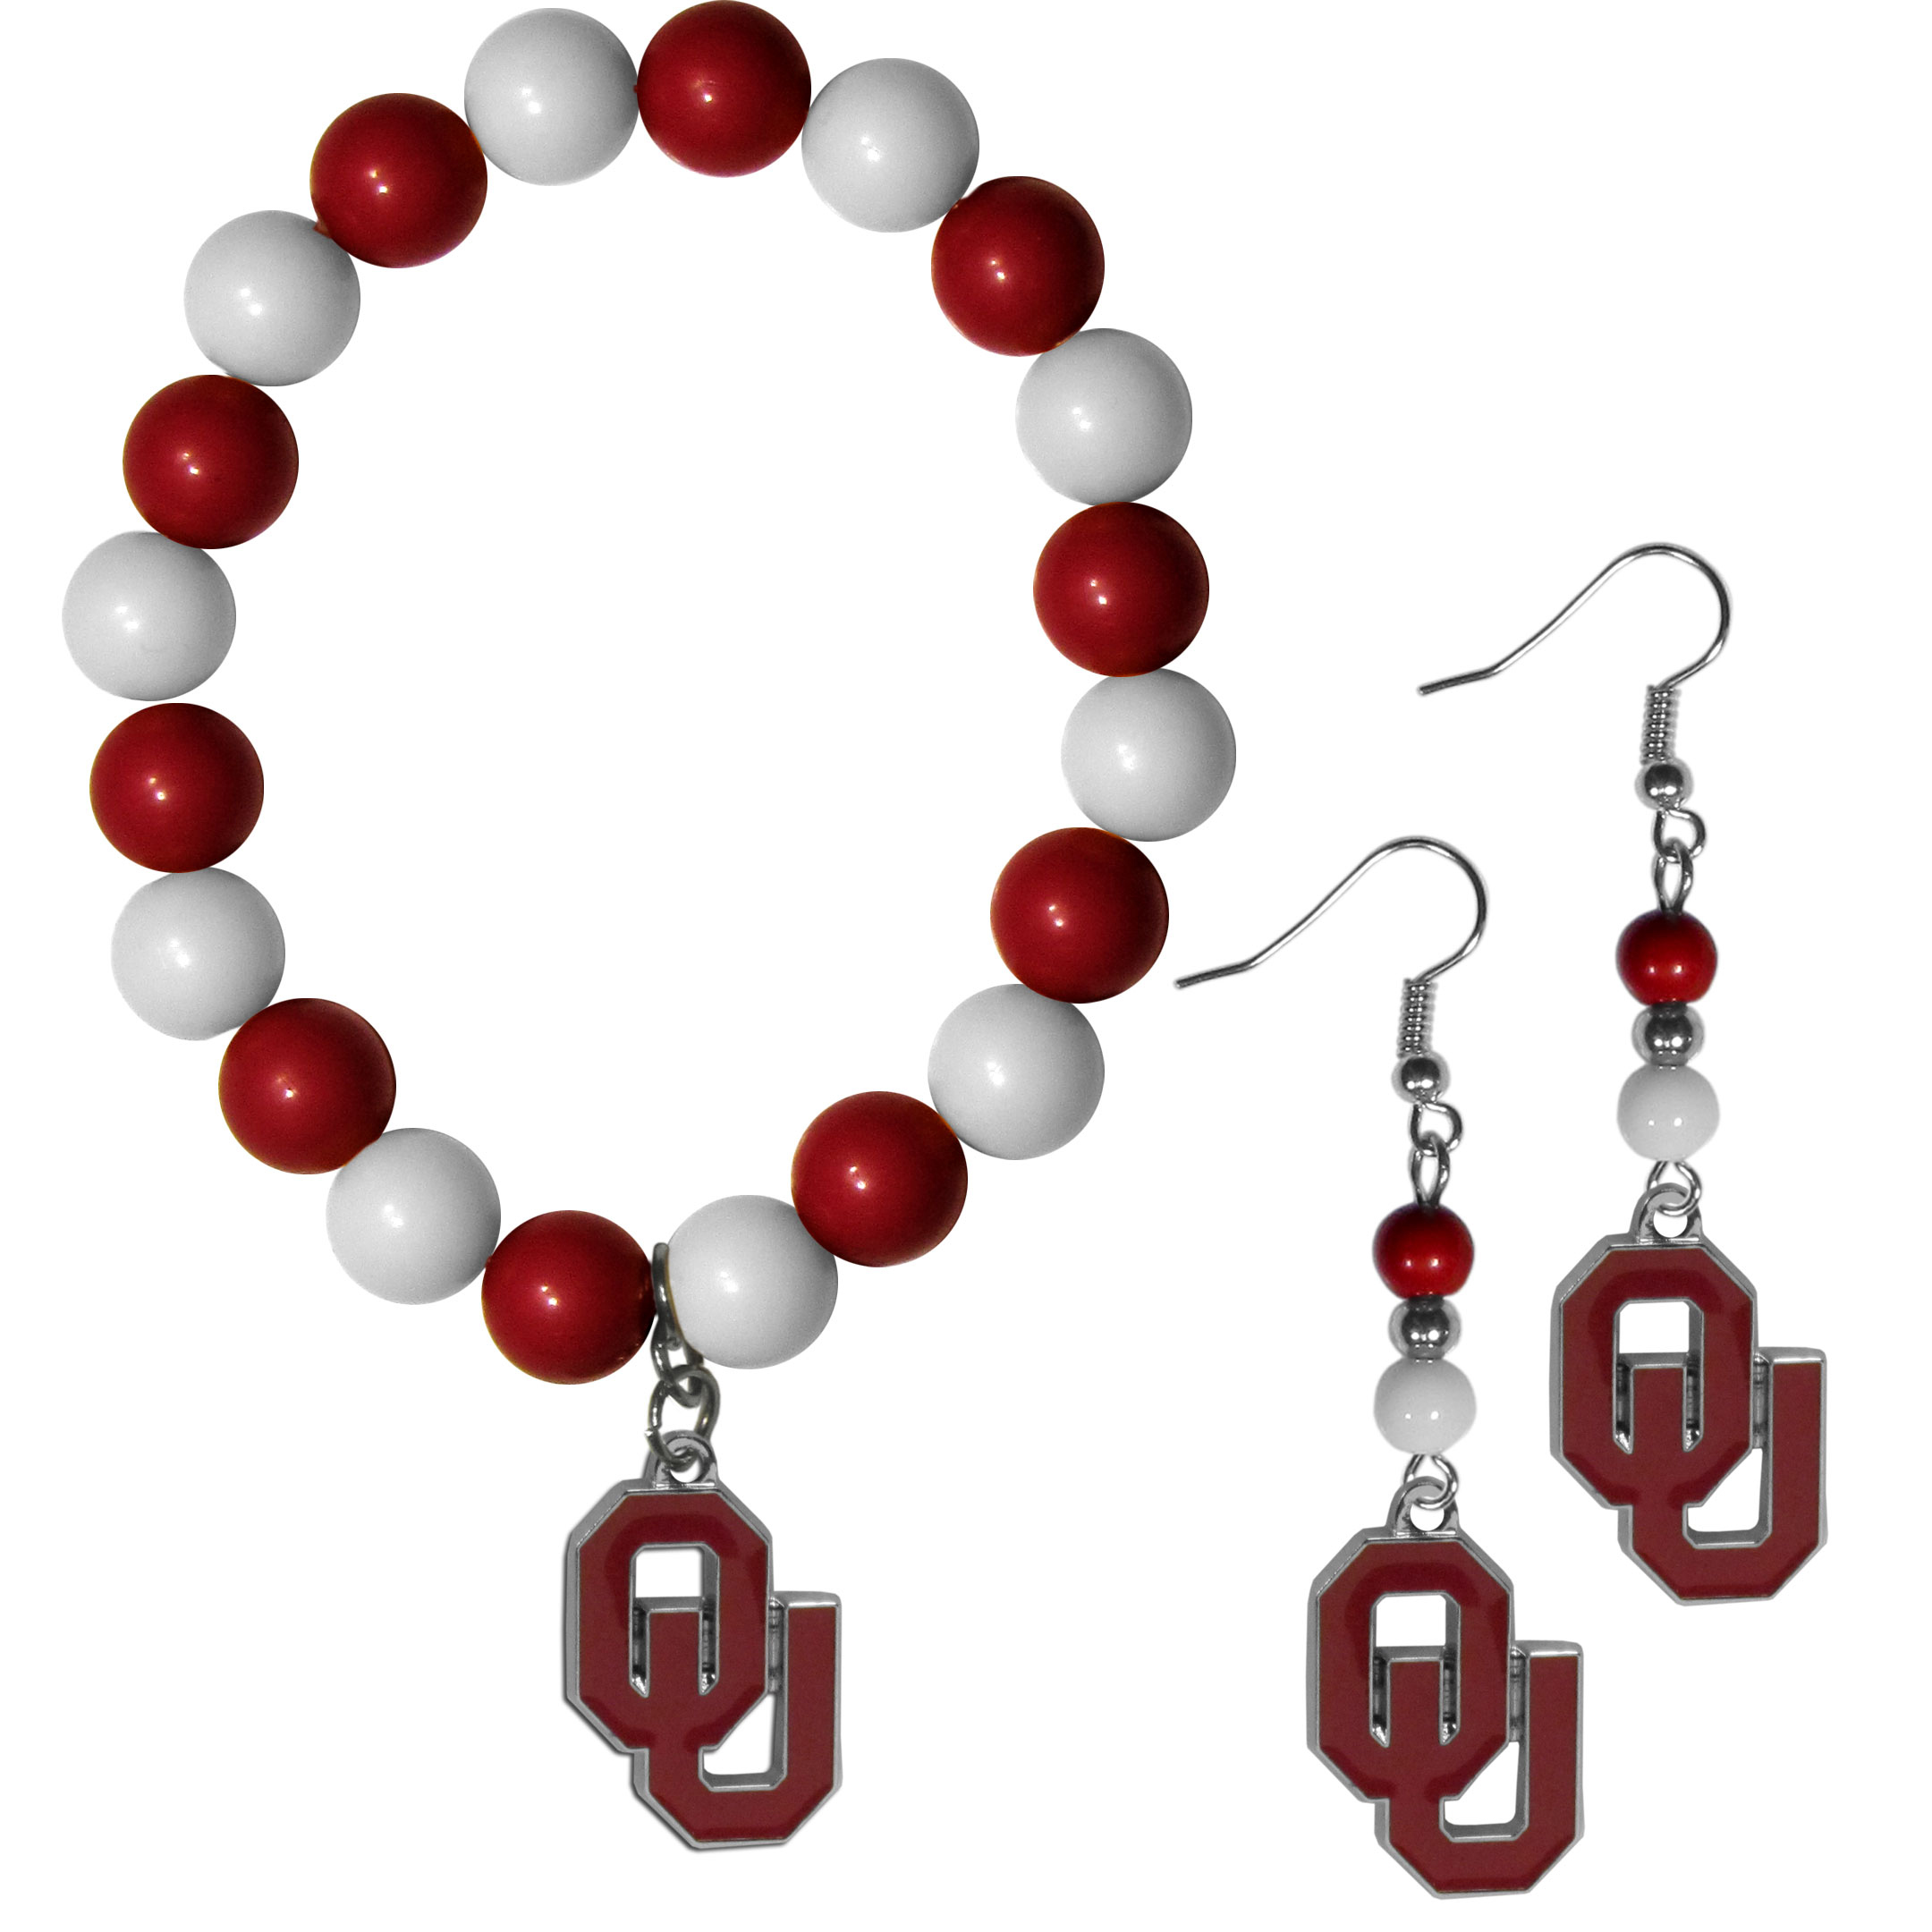 Oklahoma Sooners Fan Bead Earrings and Bracelet Set - This fun and colorful Oklahoma Sooners fan bead jewelry set is fun and casual with eye-catching beads in bright team colors. The fashionable dangle earrings feature a team colored beads that drop down to a carved and enameled charm. The stretch bracelet has larger matching beads that make a striking statement and have a matching team charm. These sassy yet sporty jewelry pieces make a perfect gift for any female fan. Spice up your game-day outfit with these fun colorful earrings and bracelet that are also cute enough for any day.